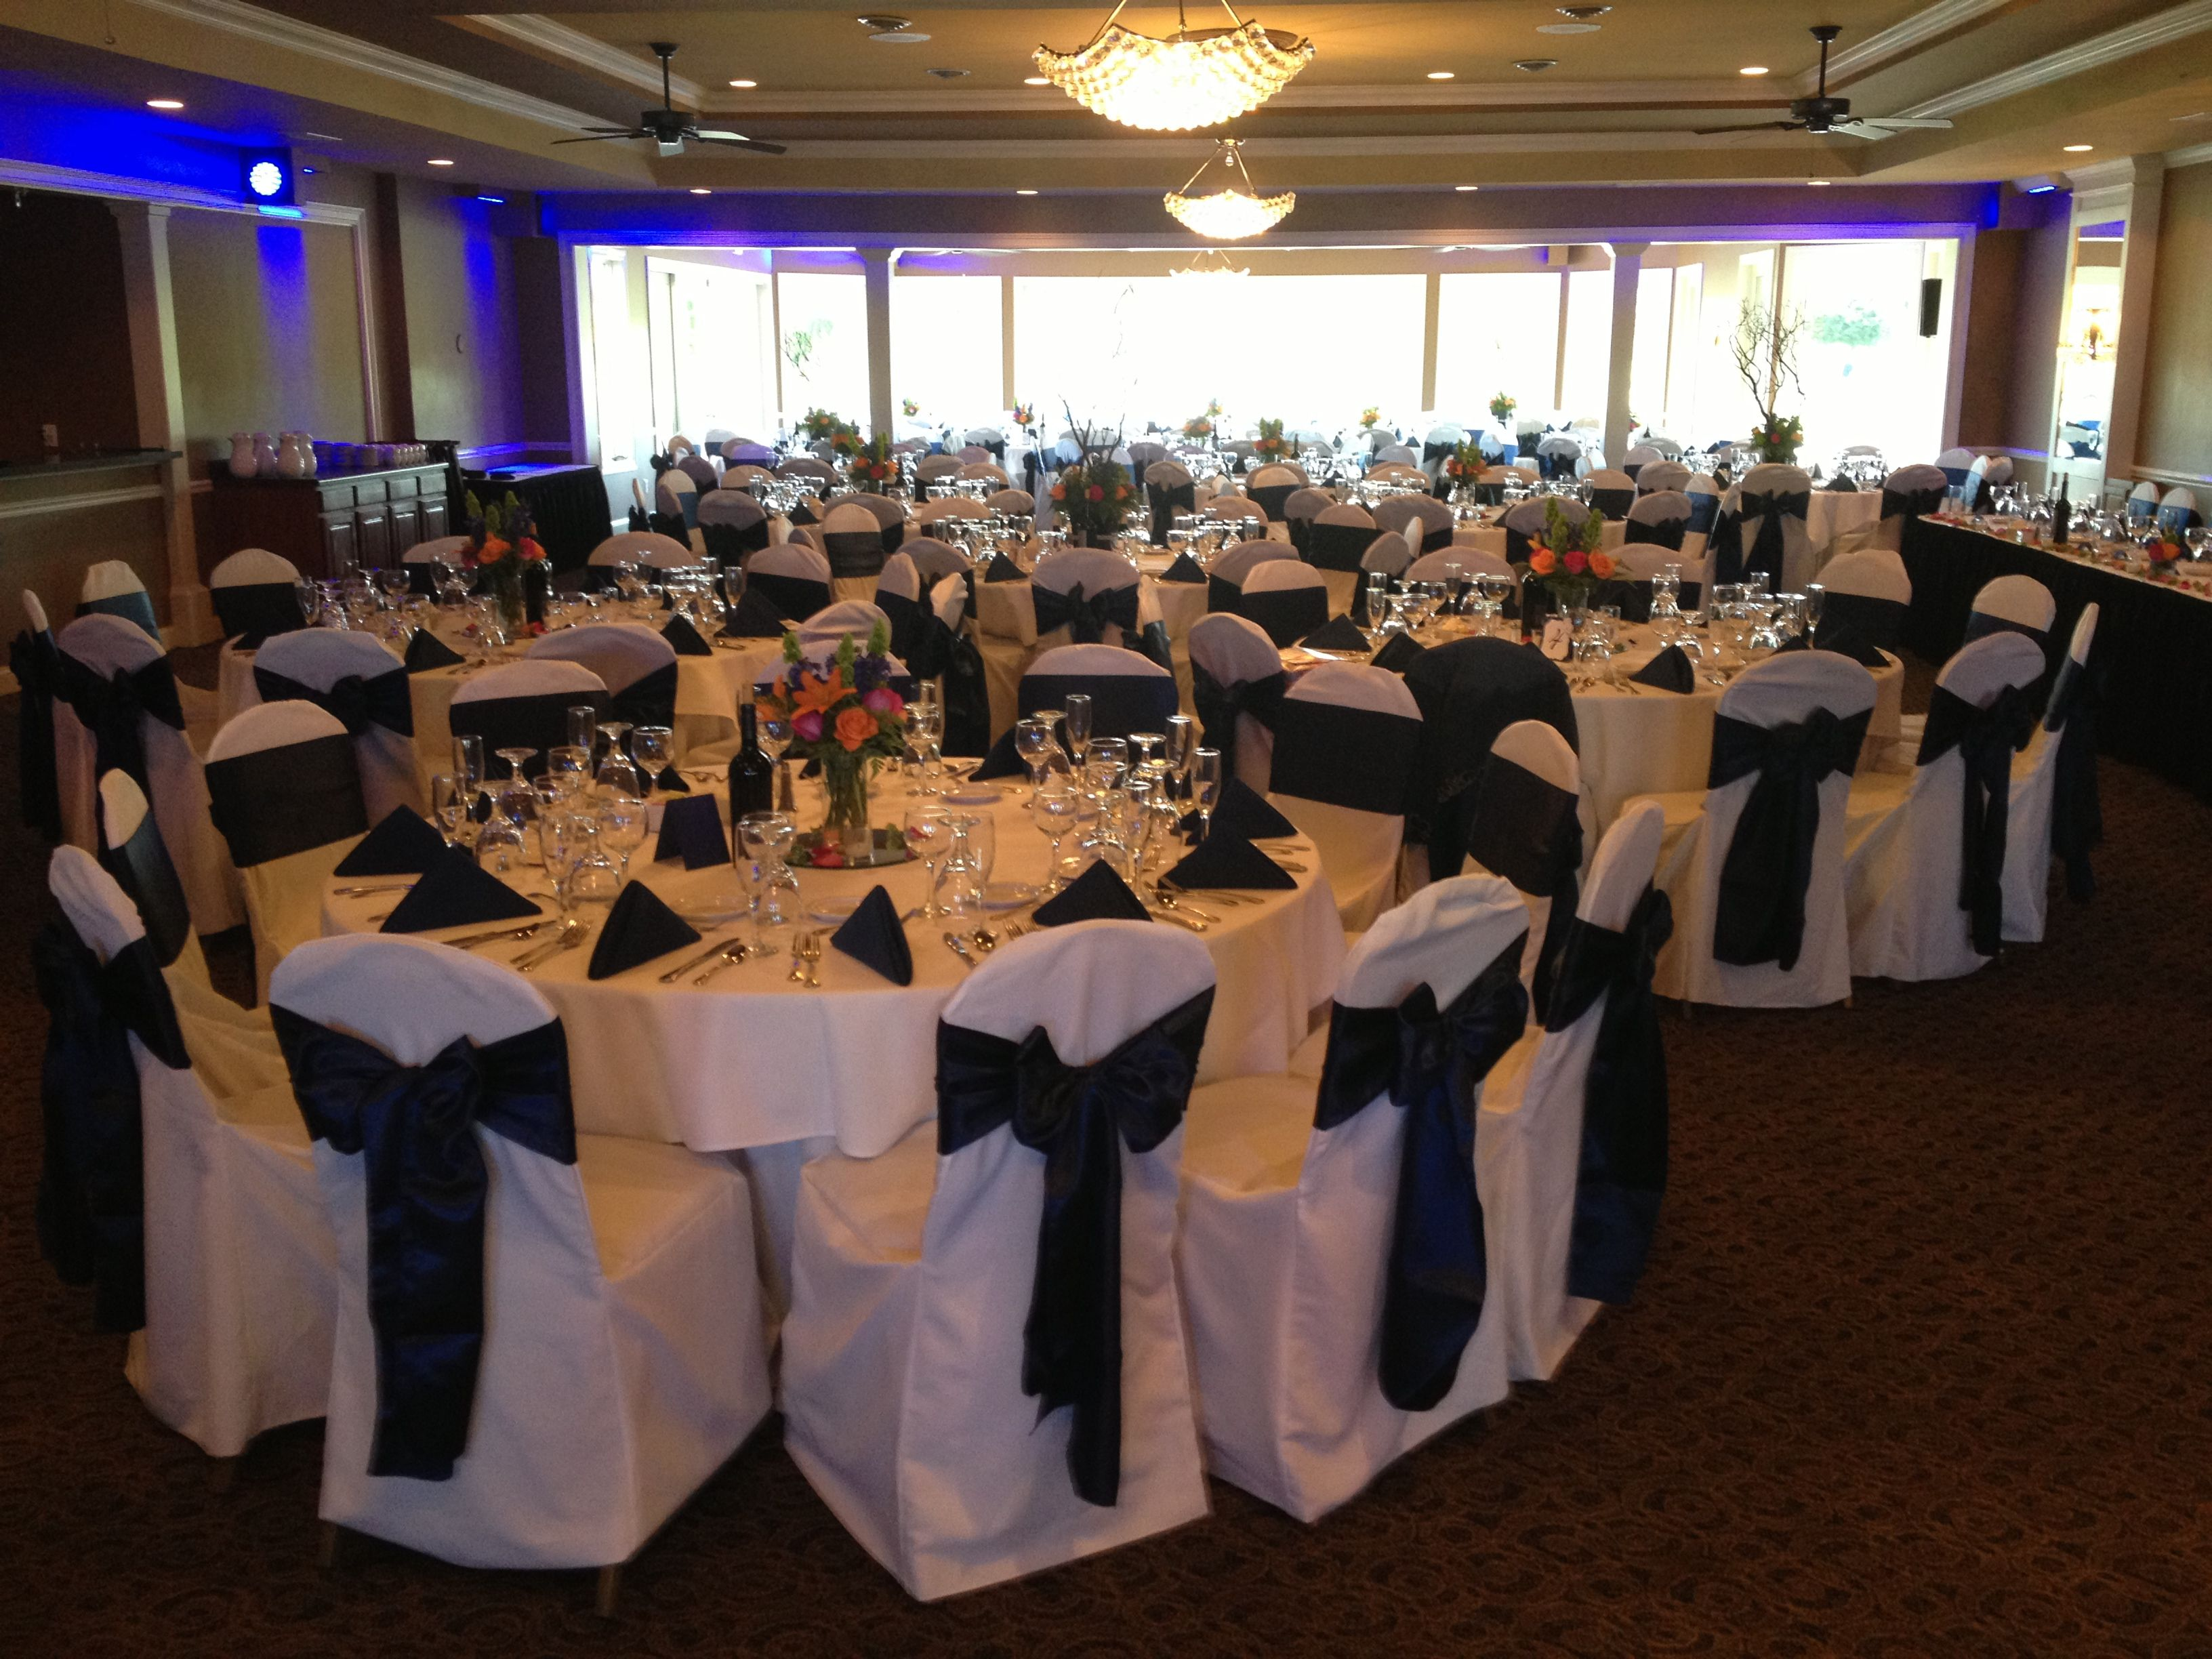 chair cover rental cost high back chairs wedding navy blue satin sash tie on white poly